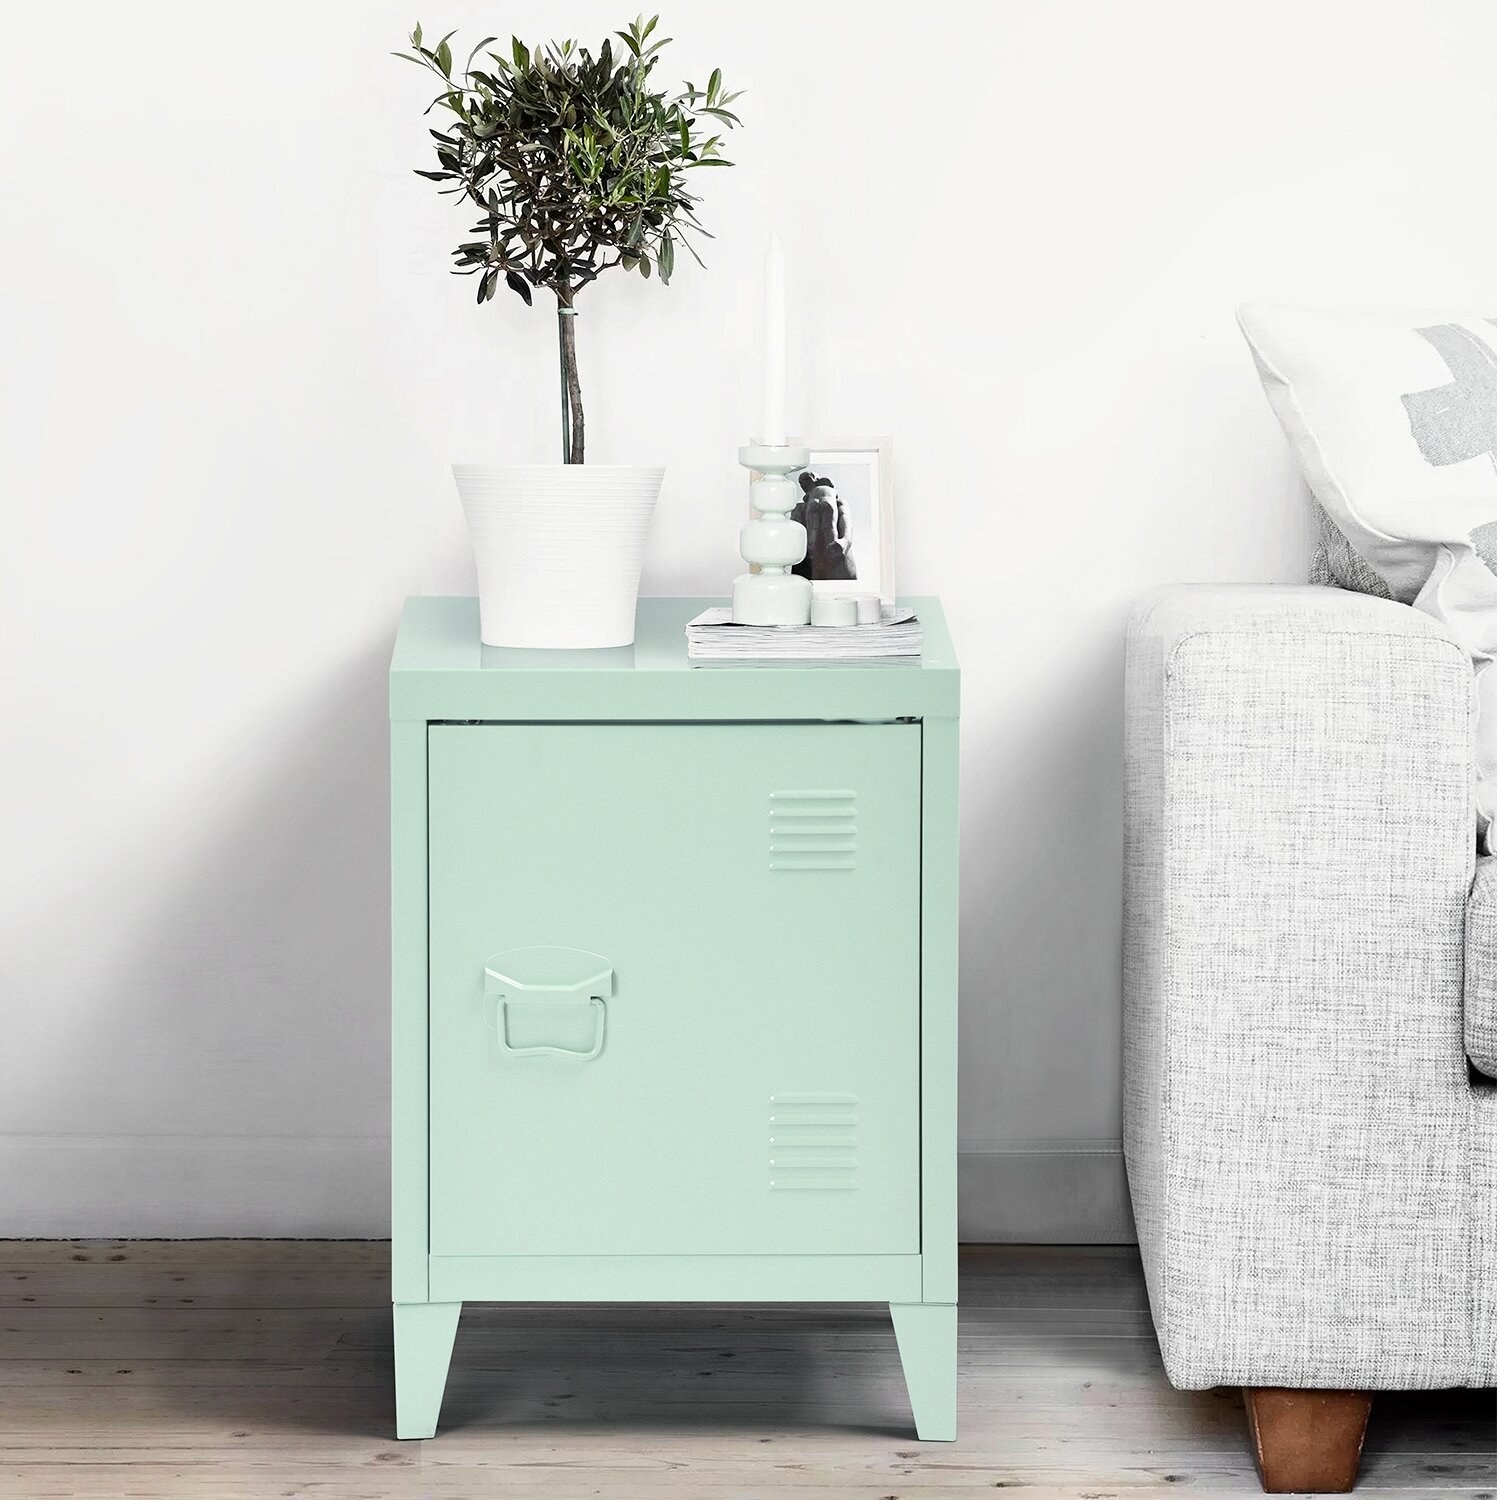 The nightstand, which has one locker-style door the opens outward, revealing two internal locker-style shelves